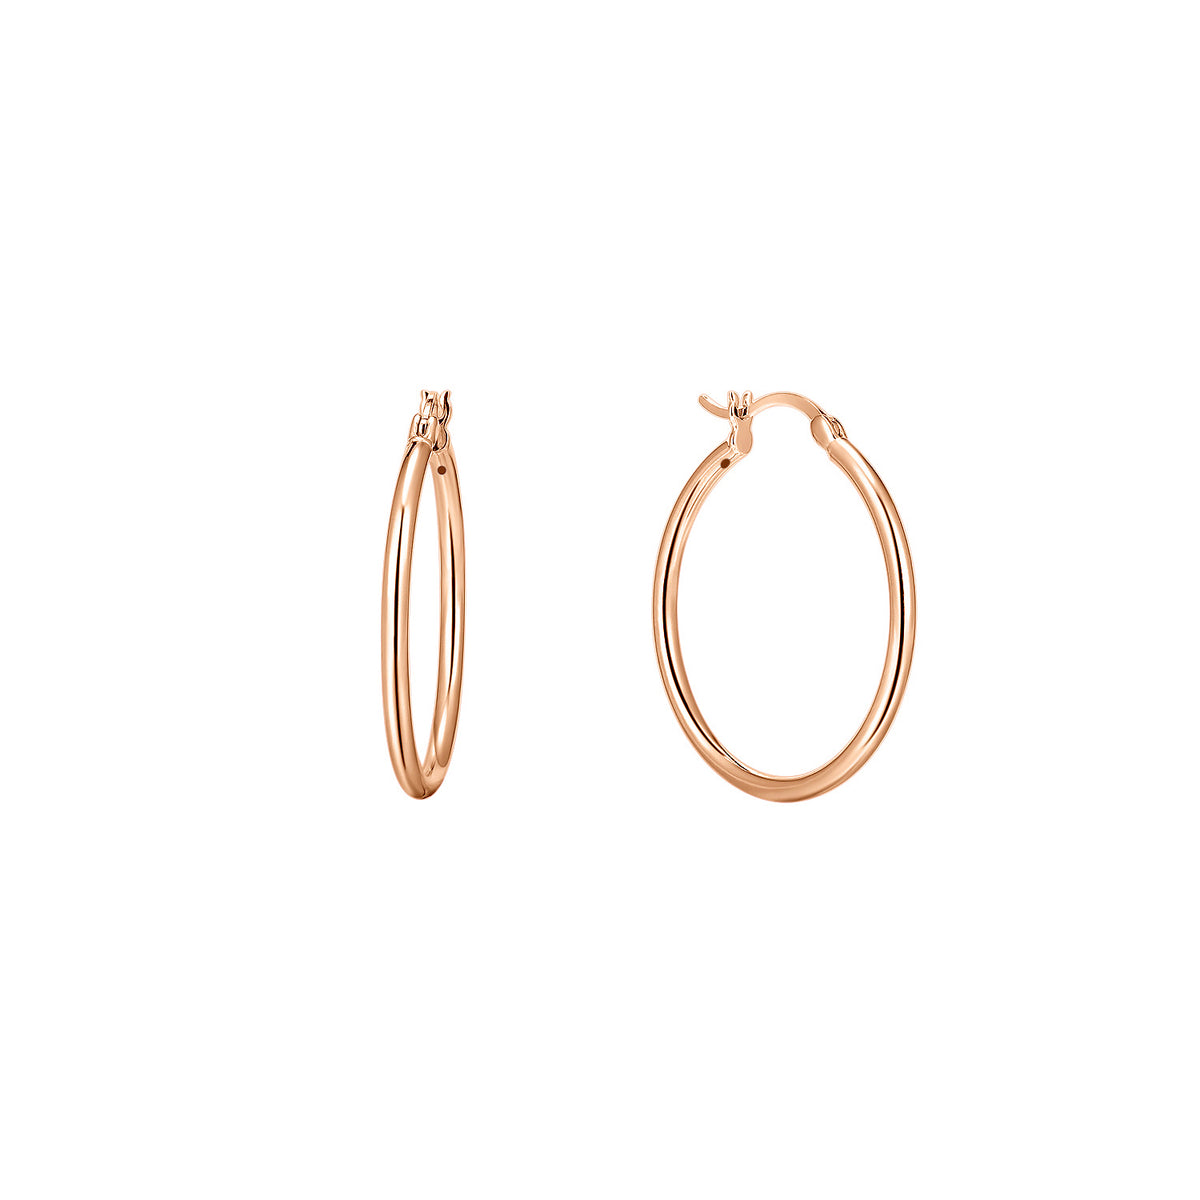 Magna | Toddler Hoop Earrings | Rose Gold Plated 925 Silver